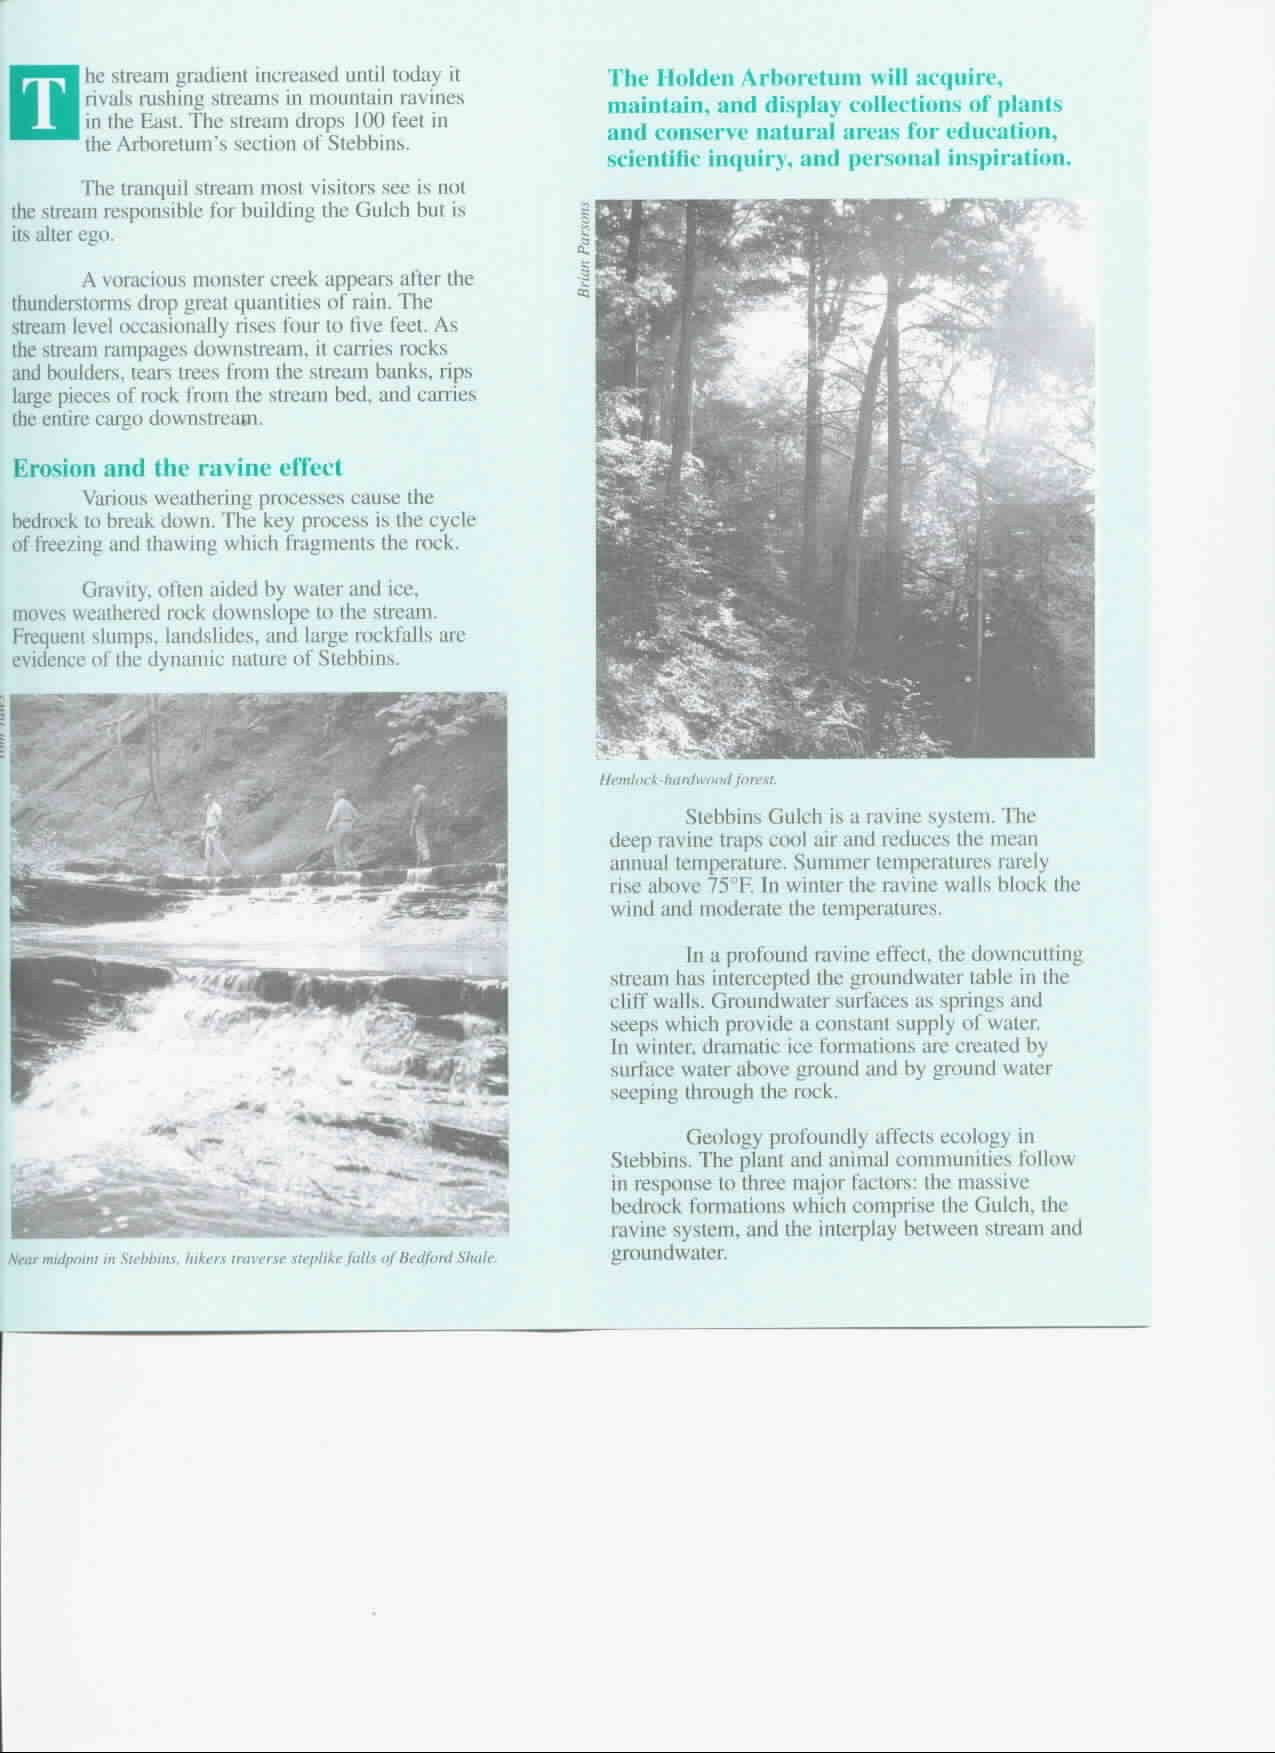 Stebbins Gulch Brochure Part 3